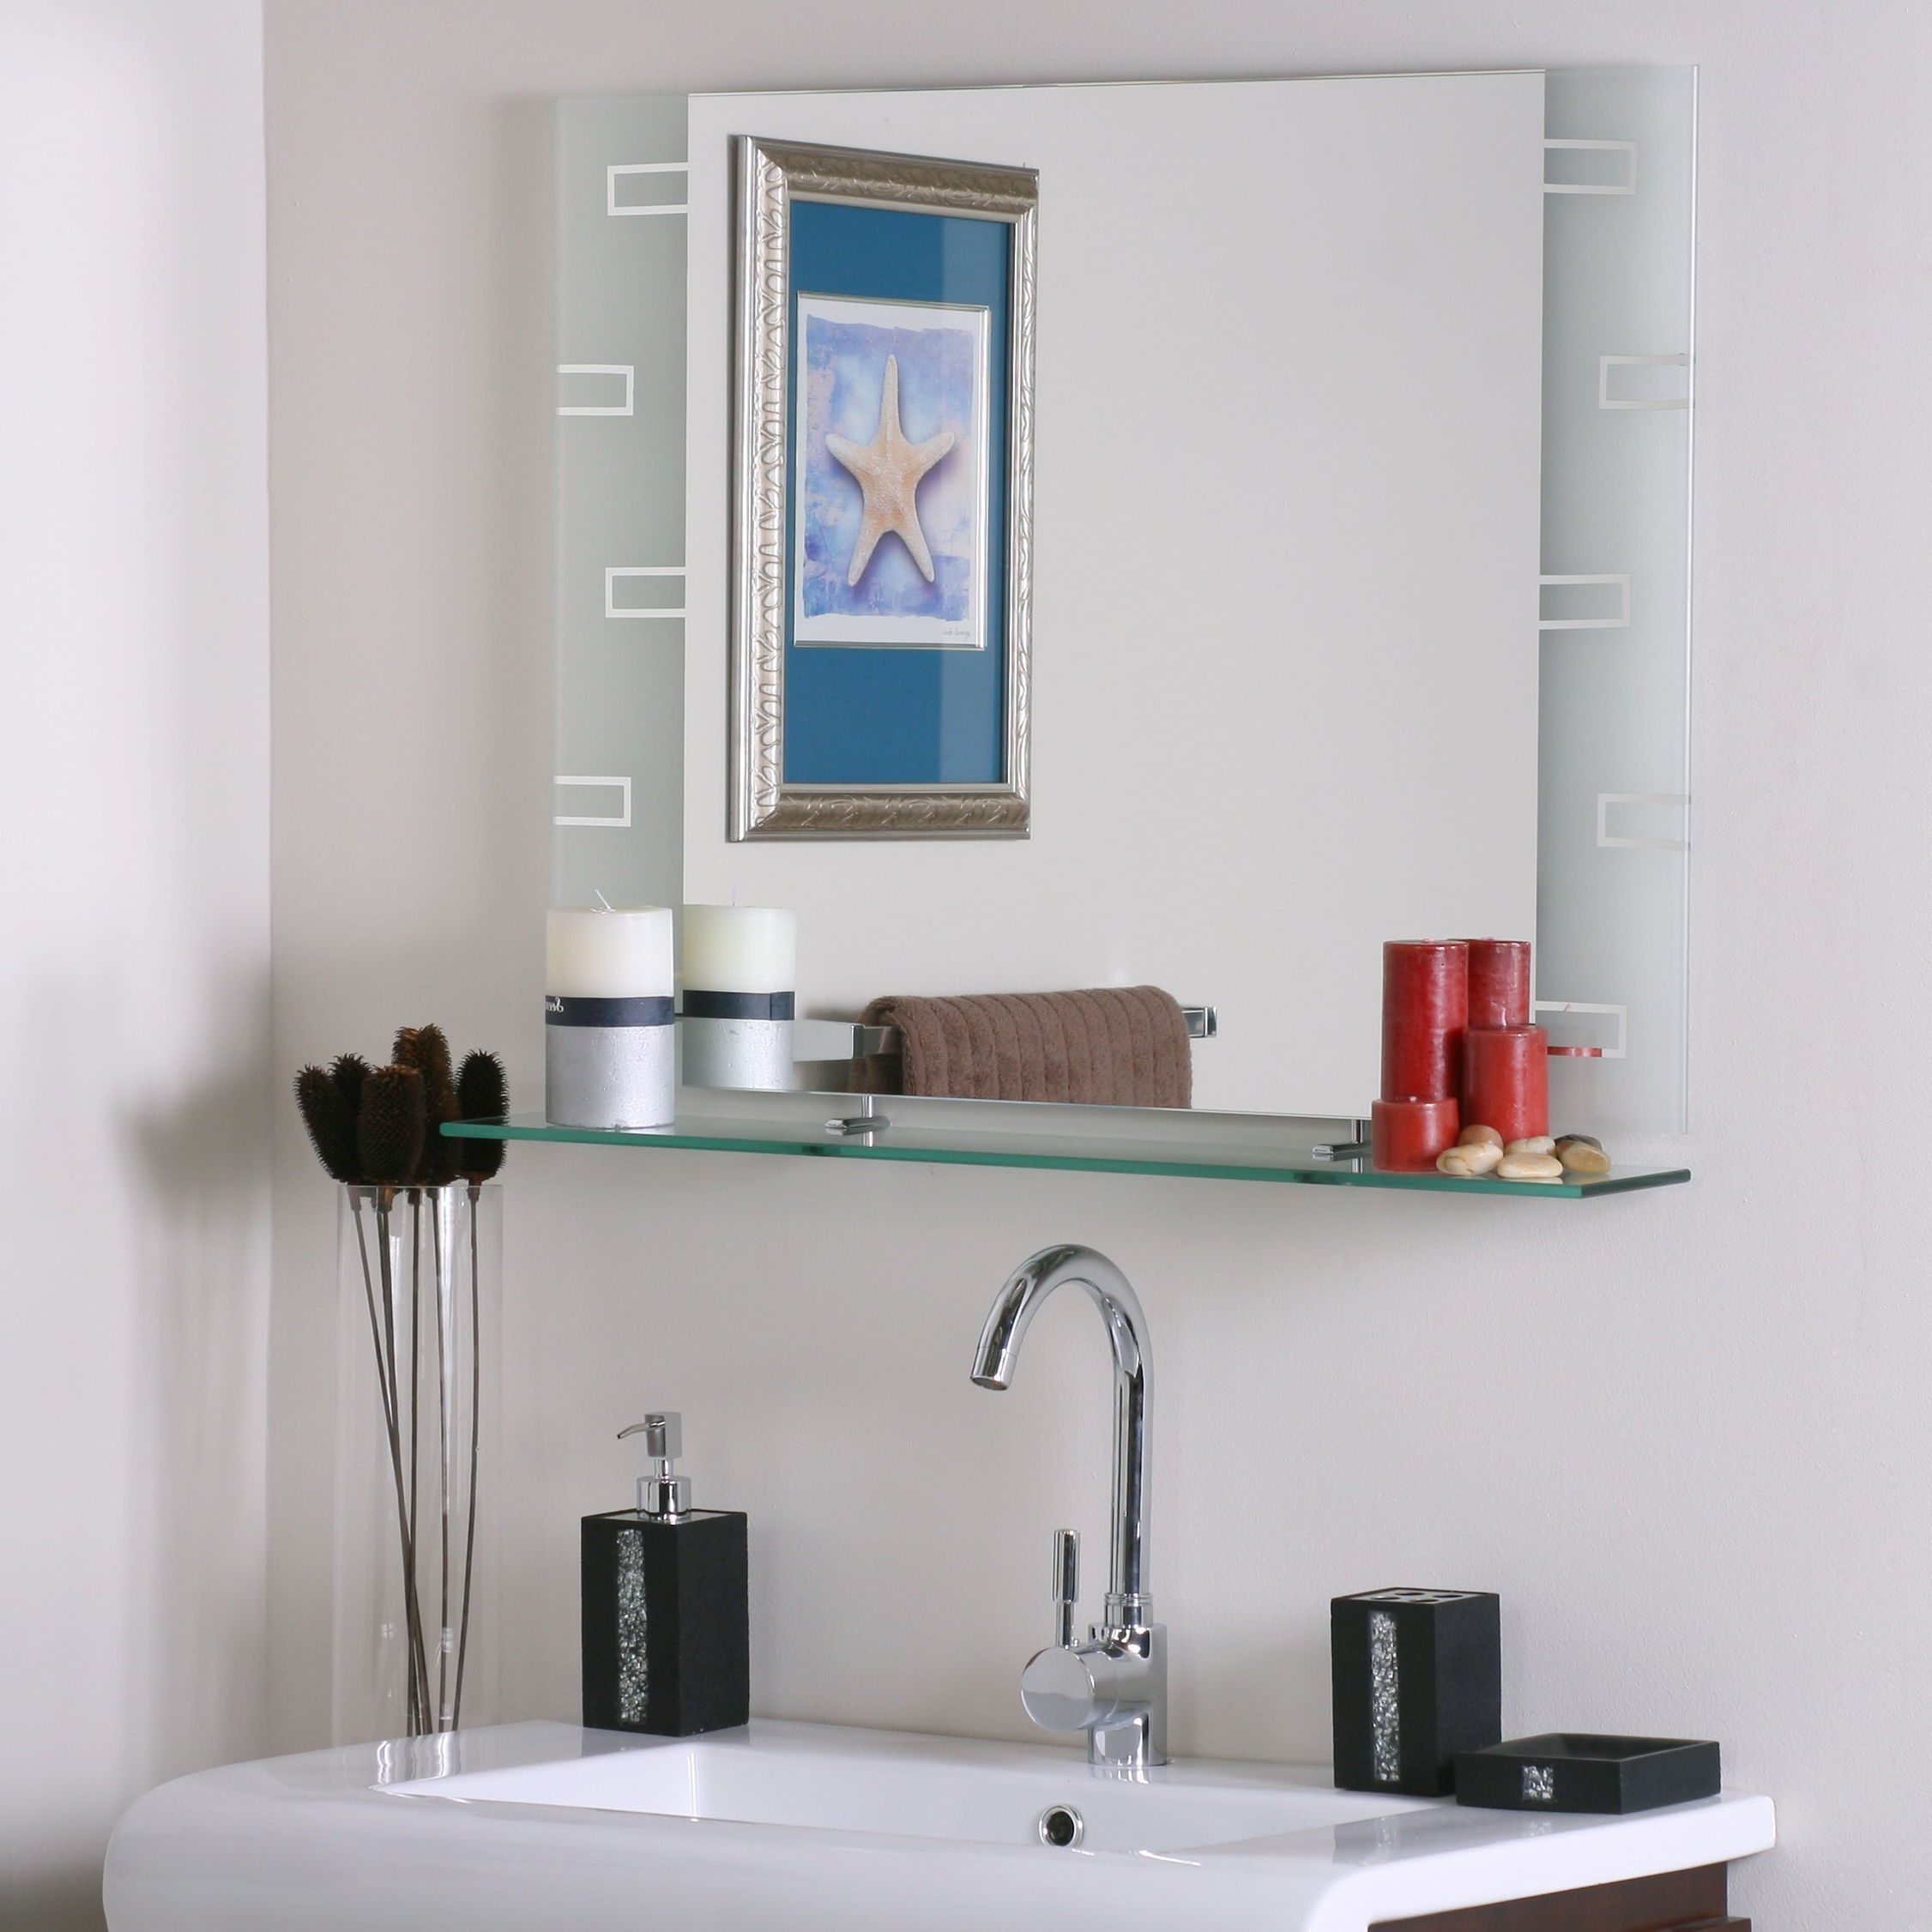 Wyona Frameless Wall Mirror With Shelf With Regard To Well Known Wall Mirror For Bathroom (View 15 of 20)